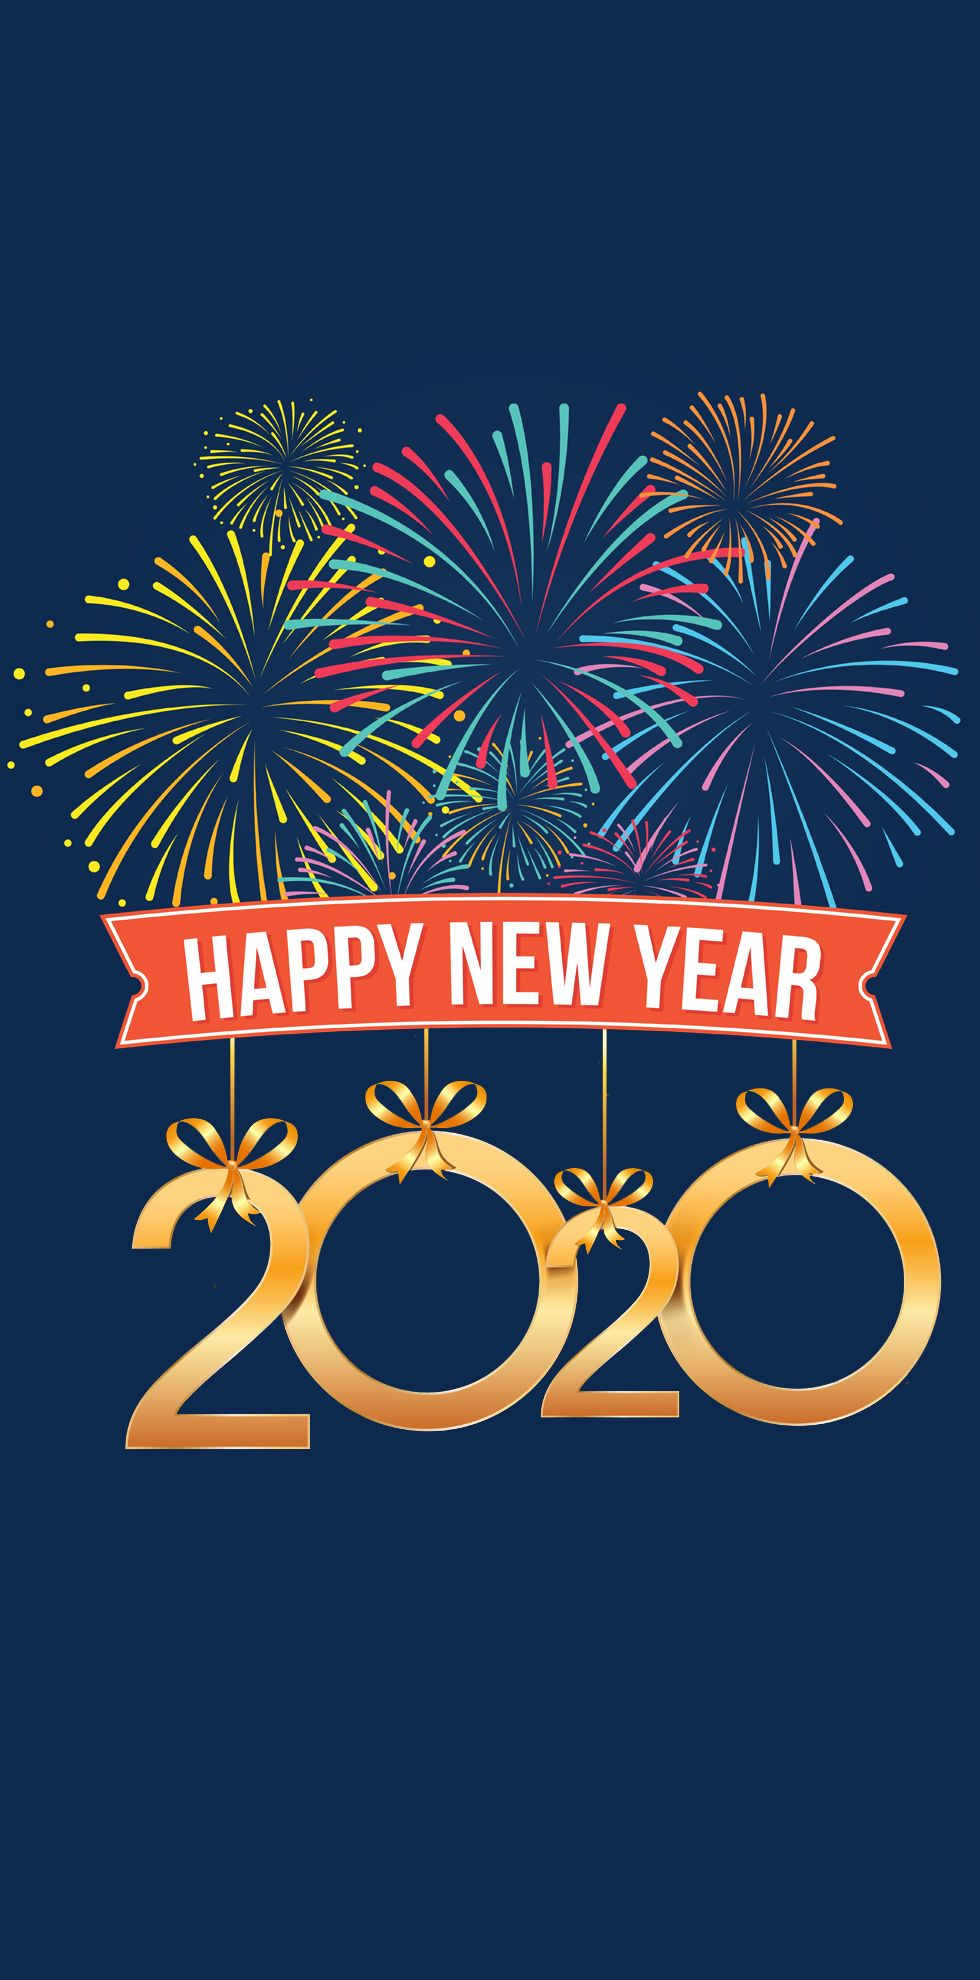 2020 Happy New Year Mobile Wallpaper Mobile Wallpaper Happy New Happy New Year